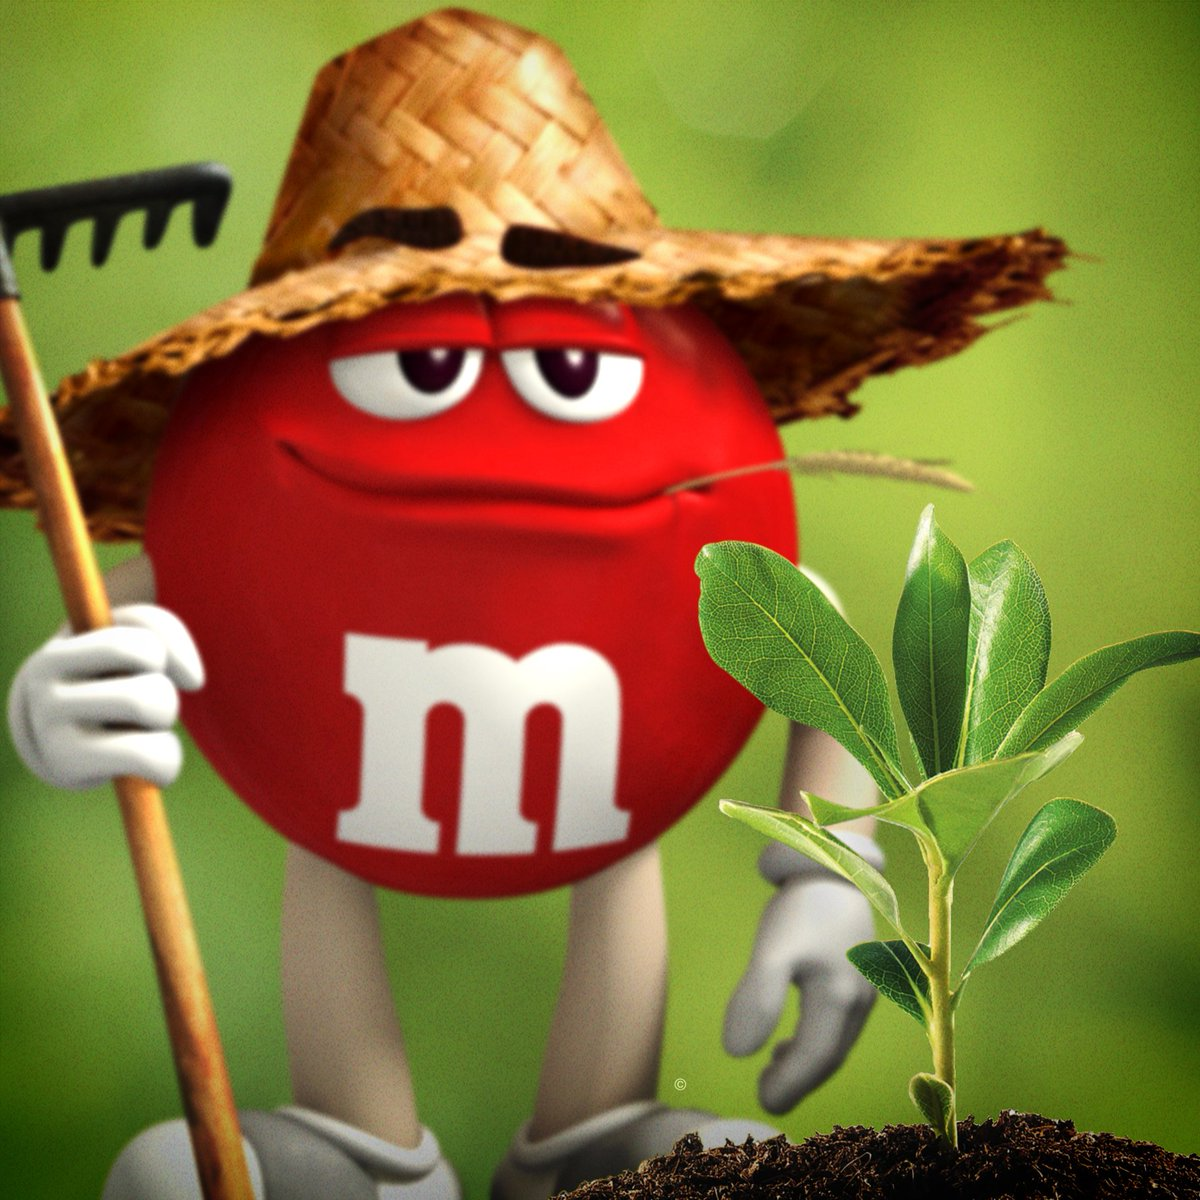 The Hunt for Red M&M'S October #AddCandyToAMovie https://t.co/88sY...